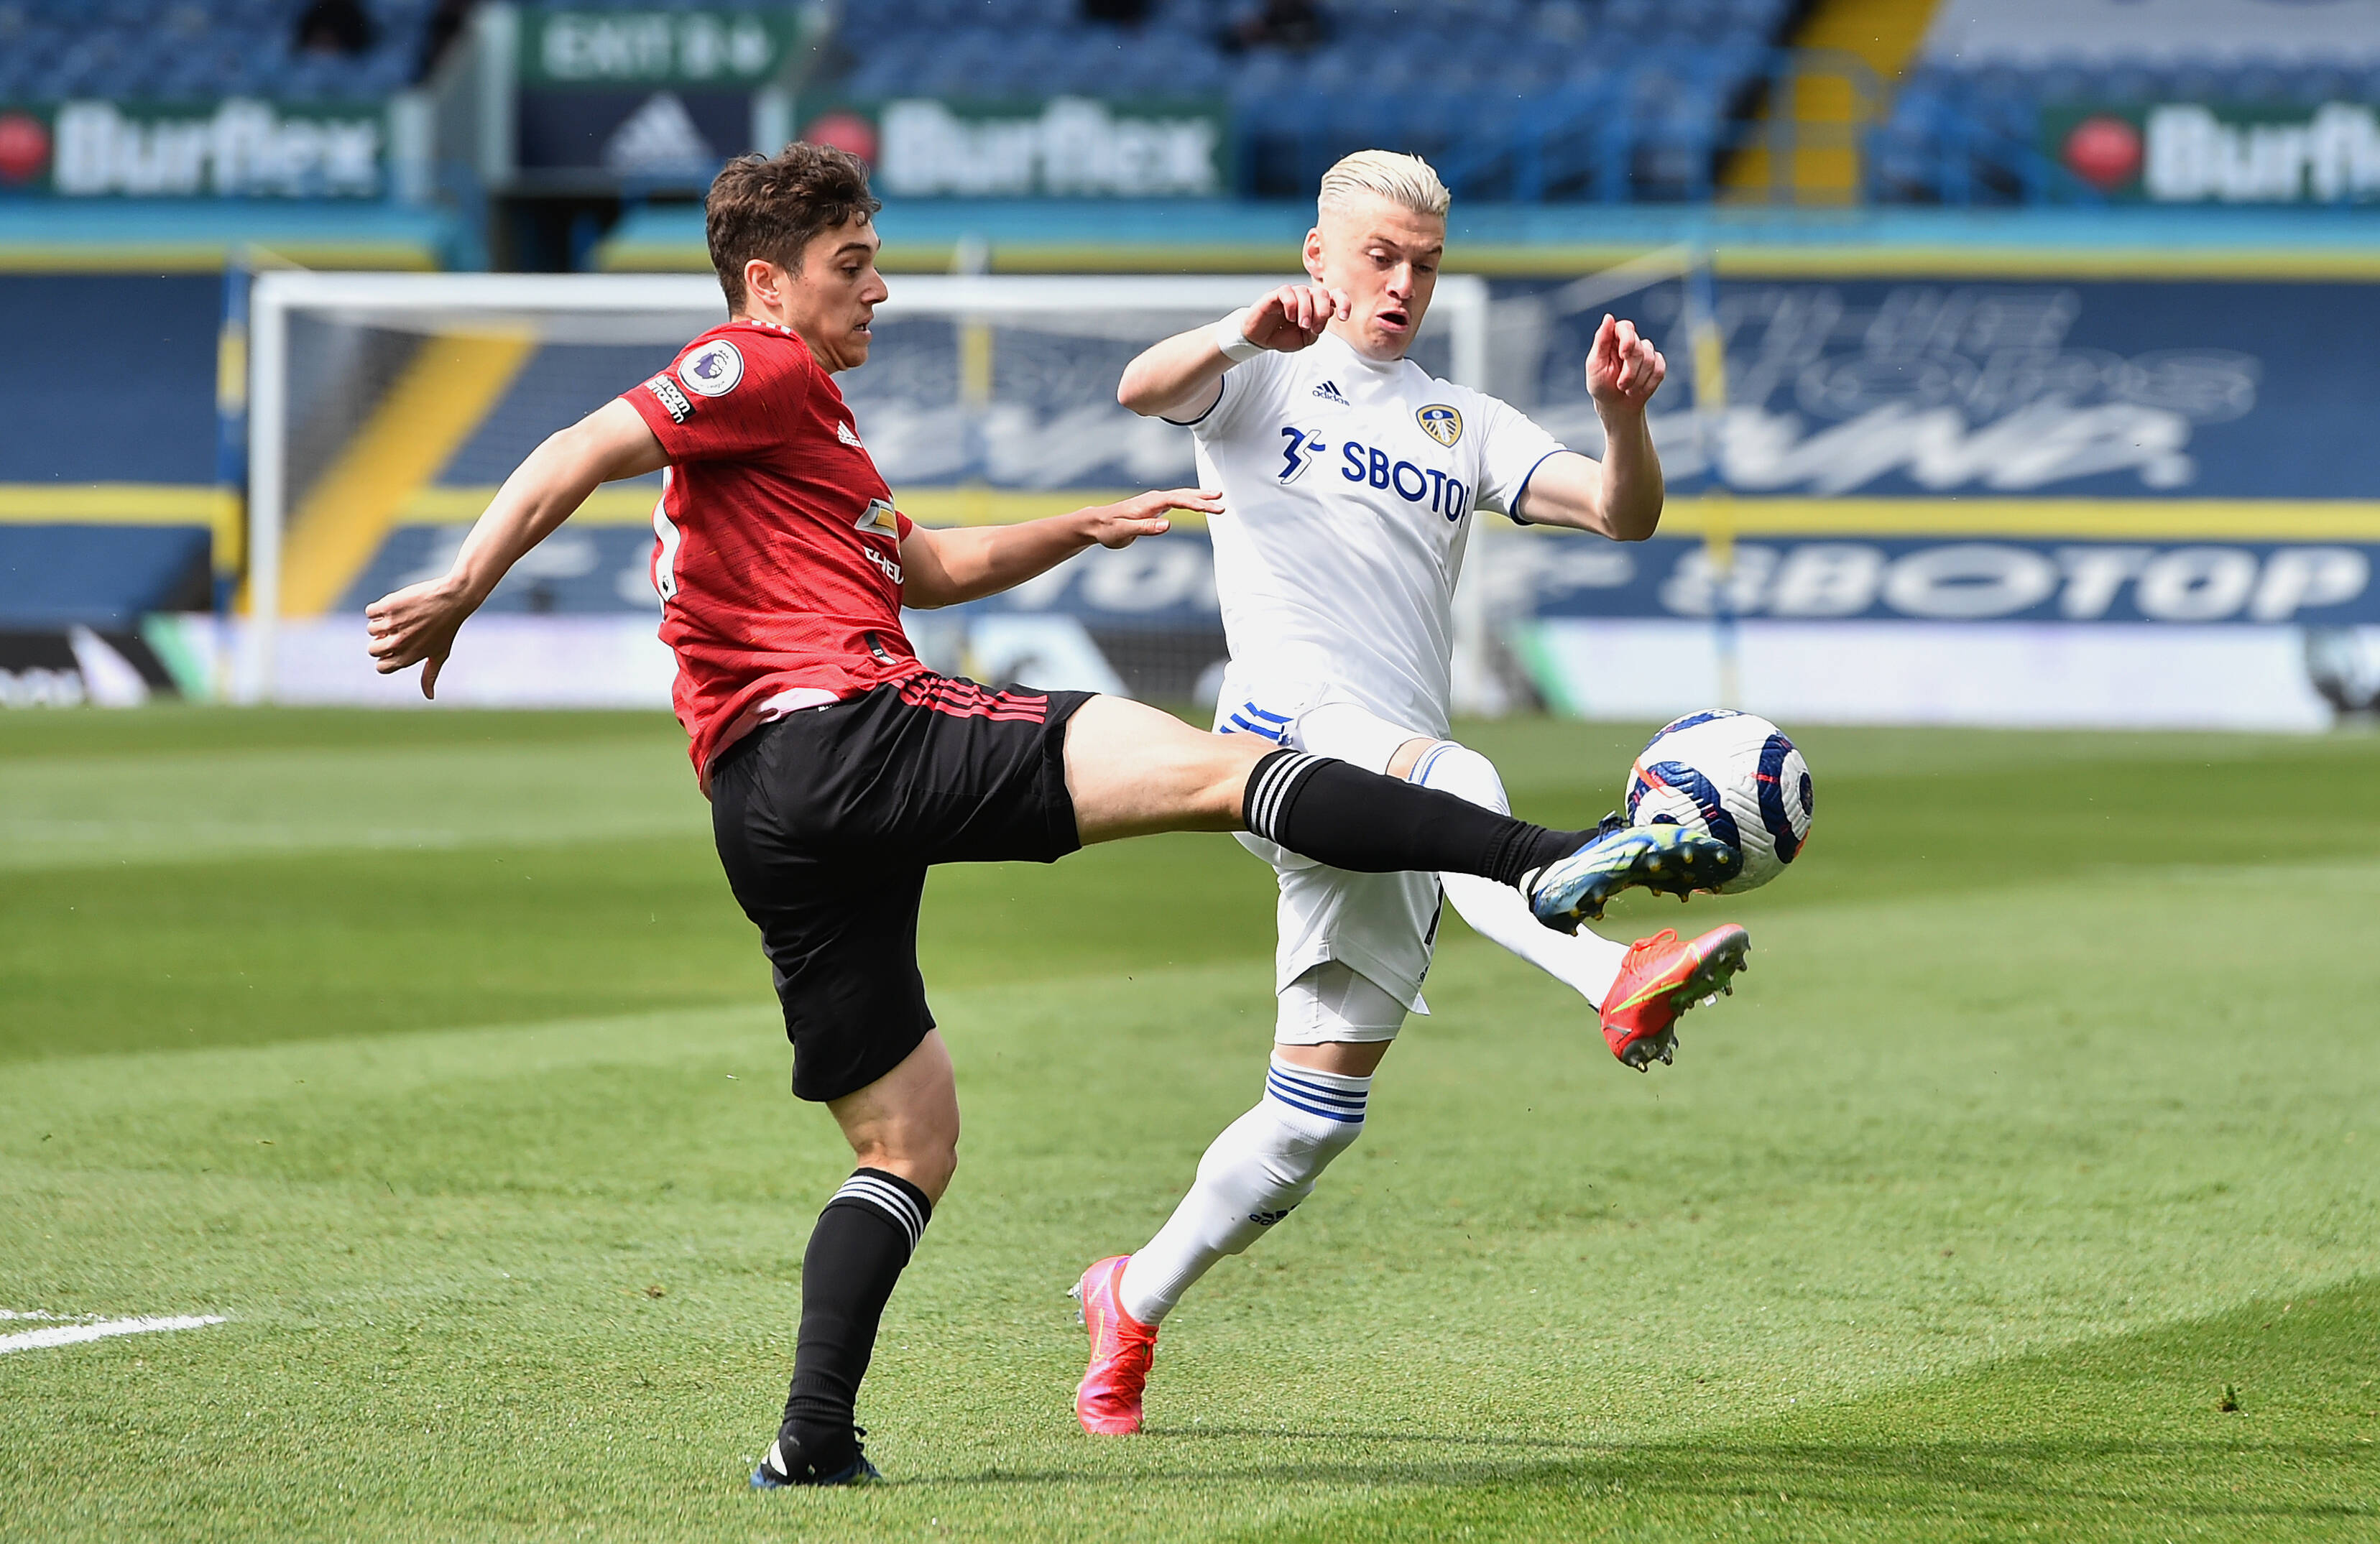 James in action for Manchester United against Leeds